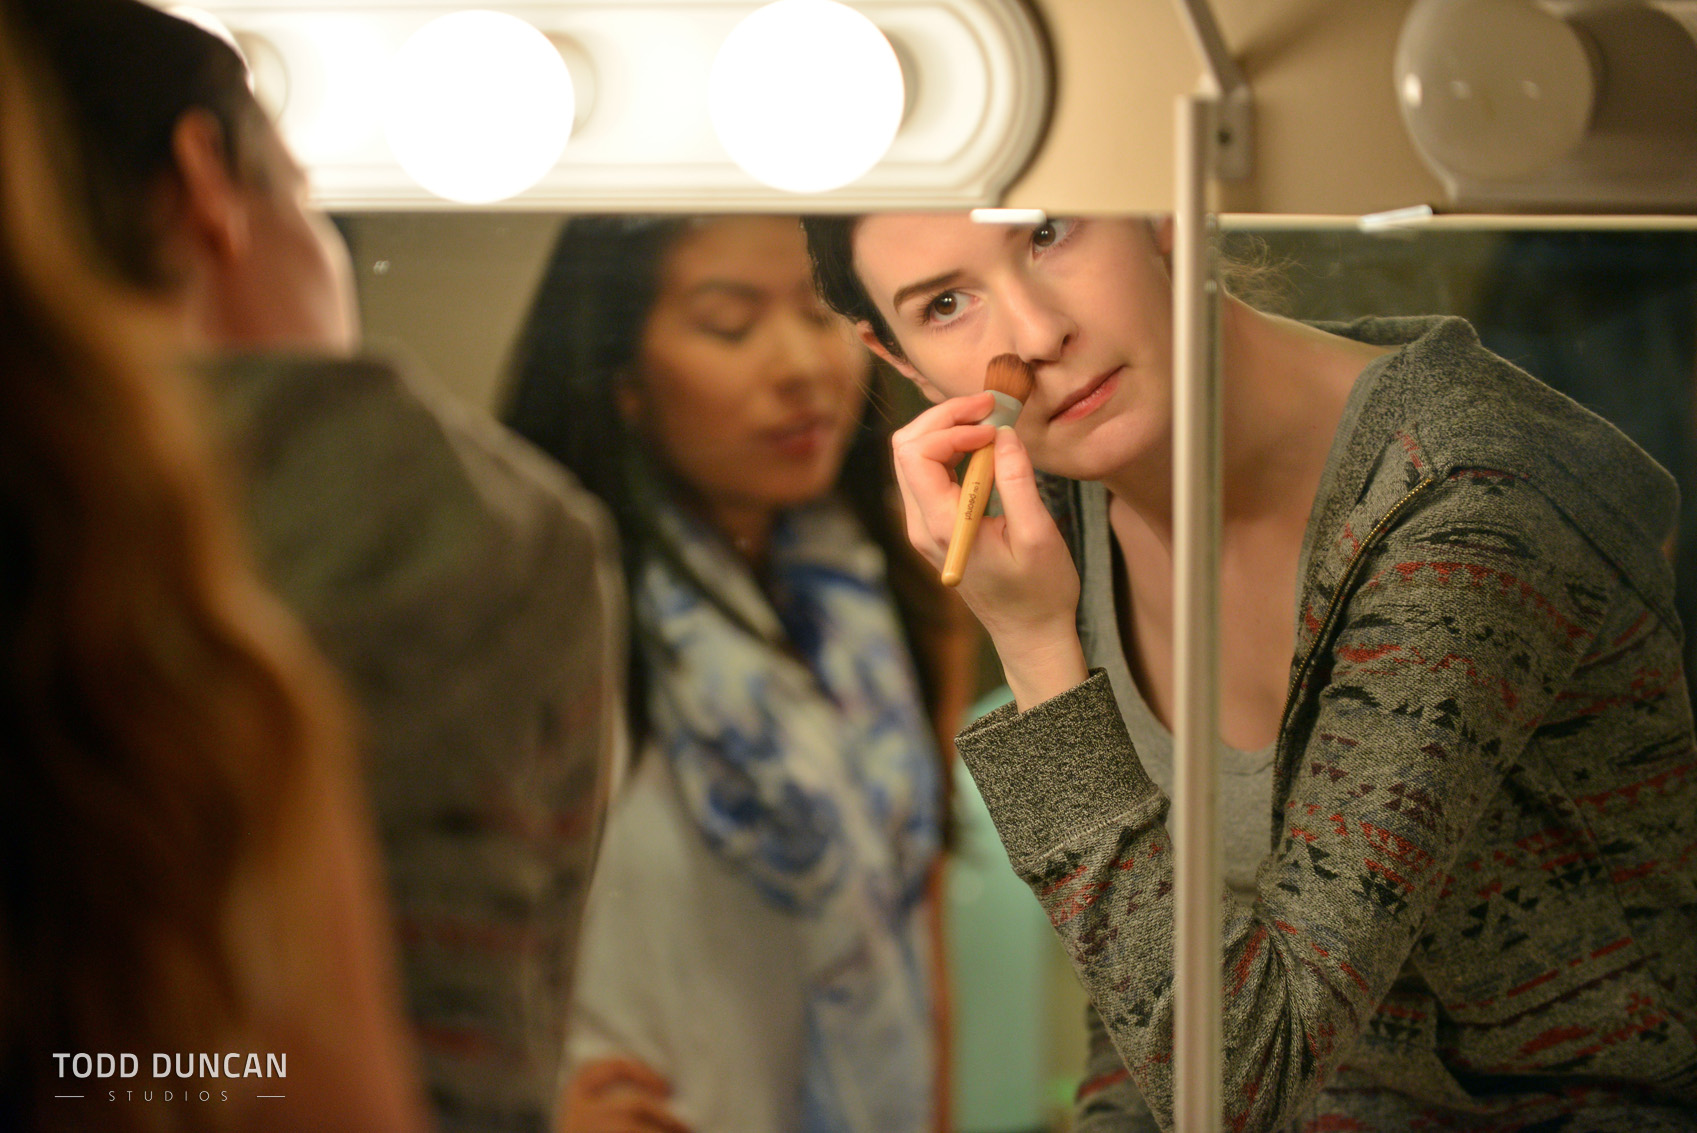 Backstage, applying makeup in the mirror.